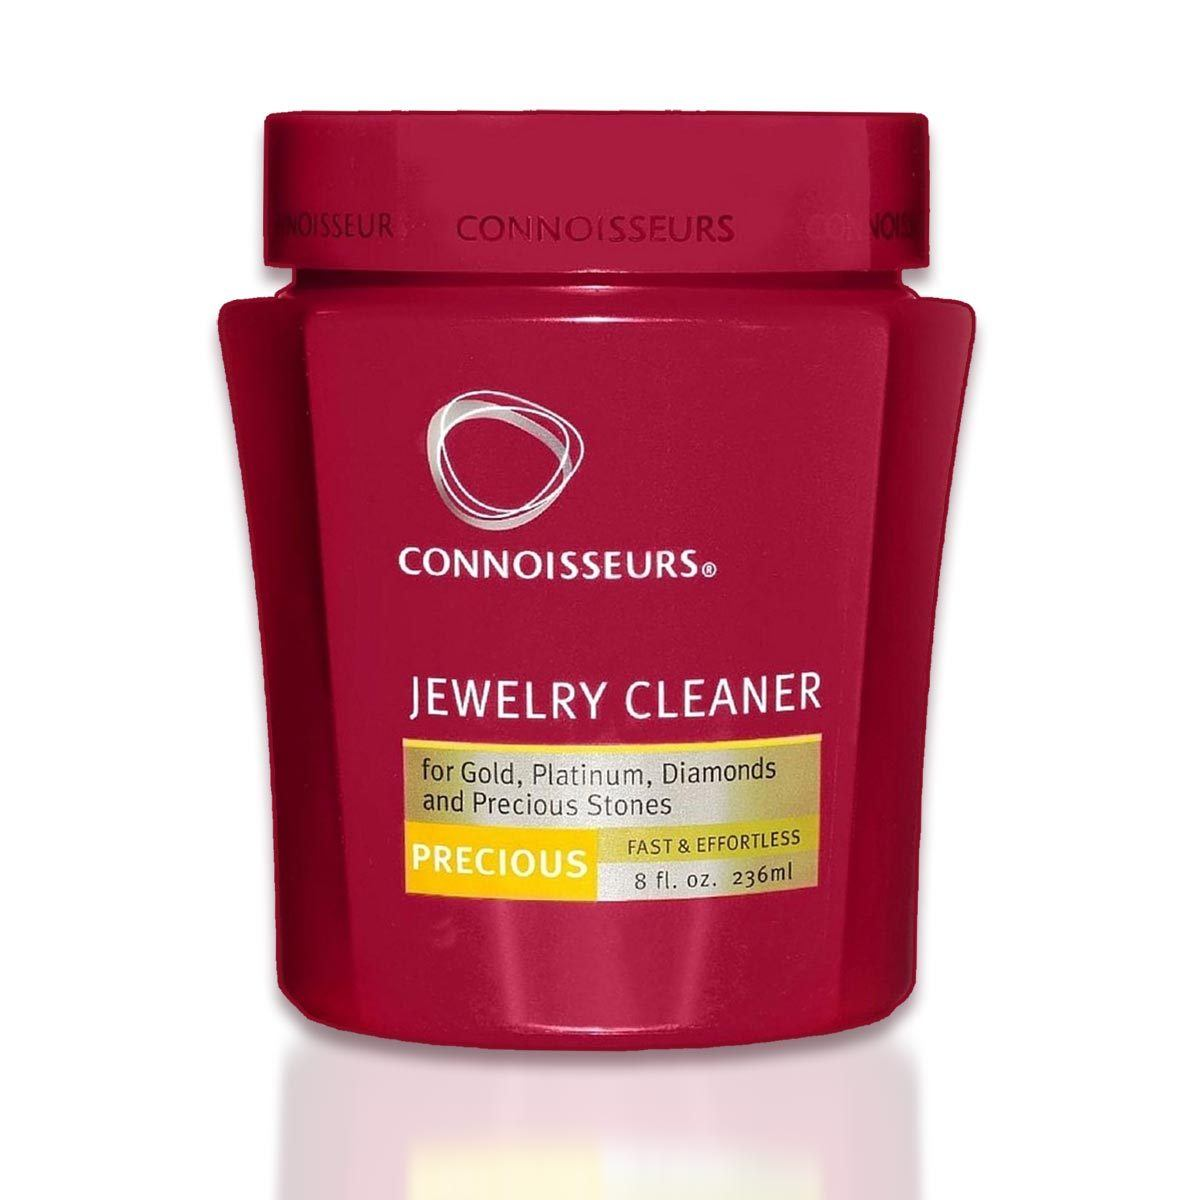 Jewelry Cleaner By Connoisseurs Add-On Items deBebians